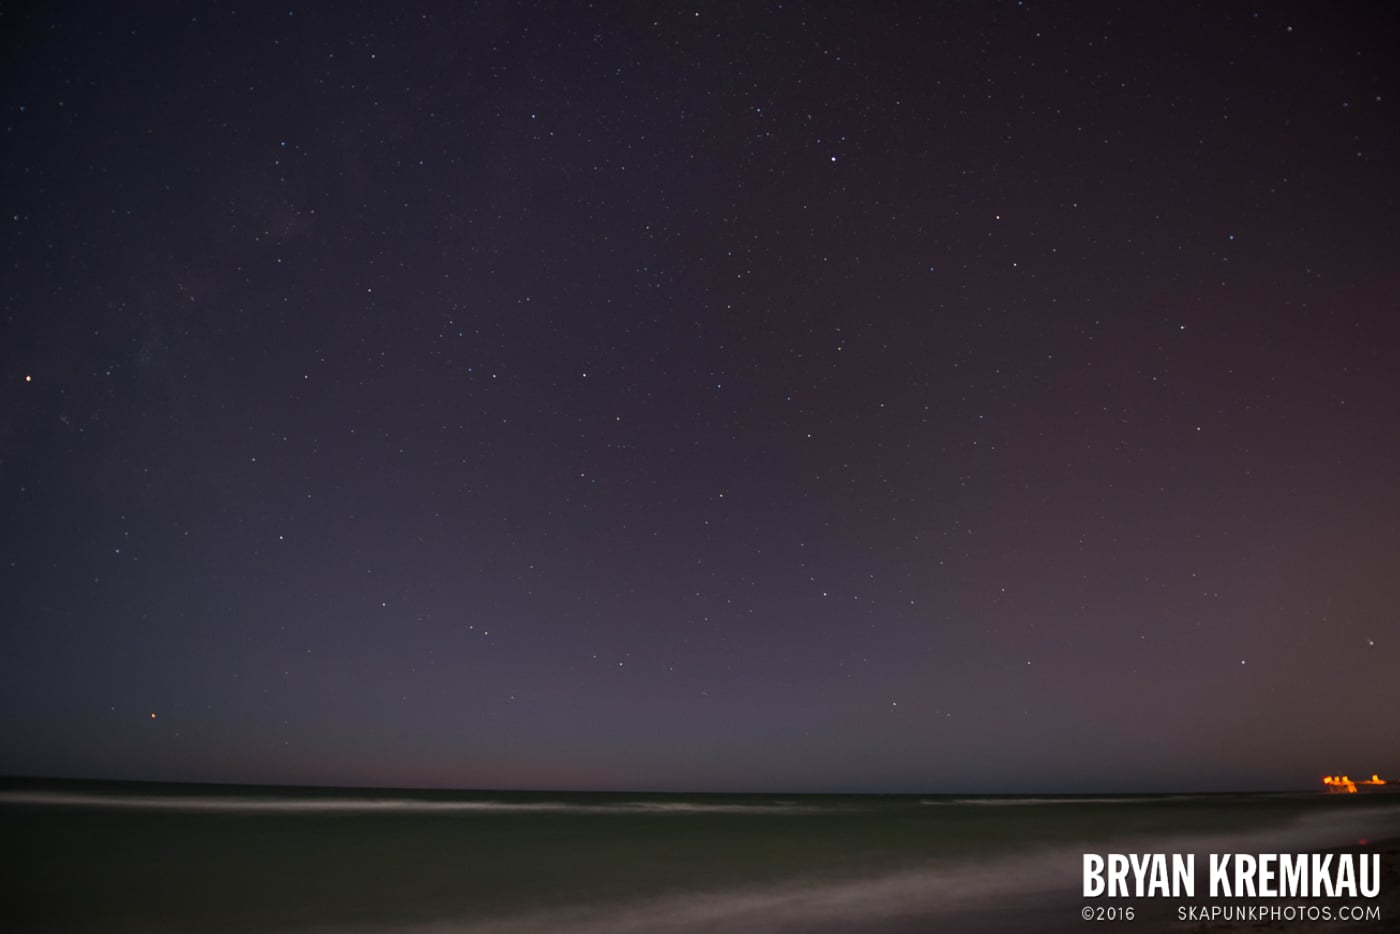 Sunsets, Astrophotography & Birds @ Venice, Florida - 10.25.14 - 11.5.14 (77)